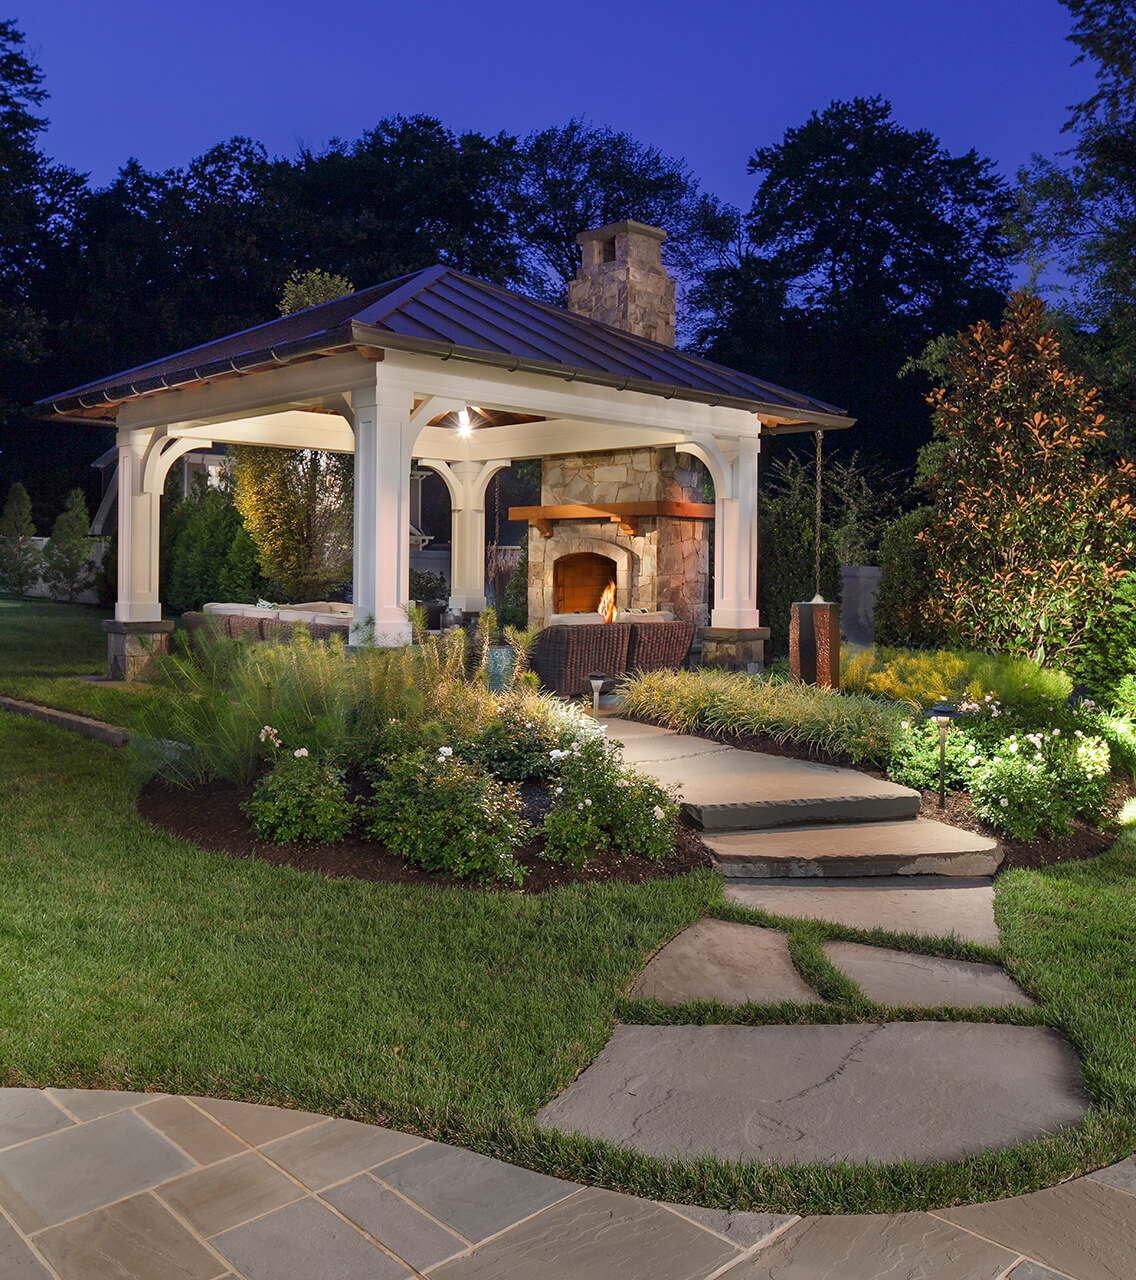 backyard fireplace pavilion